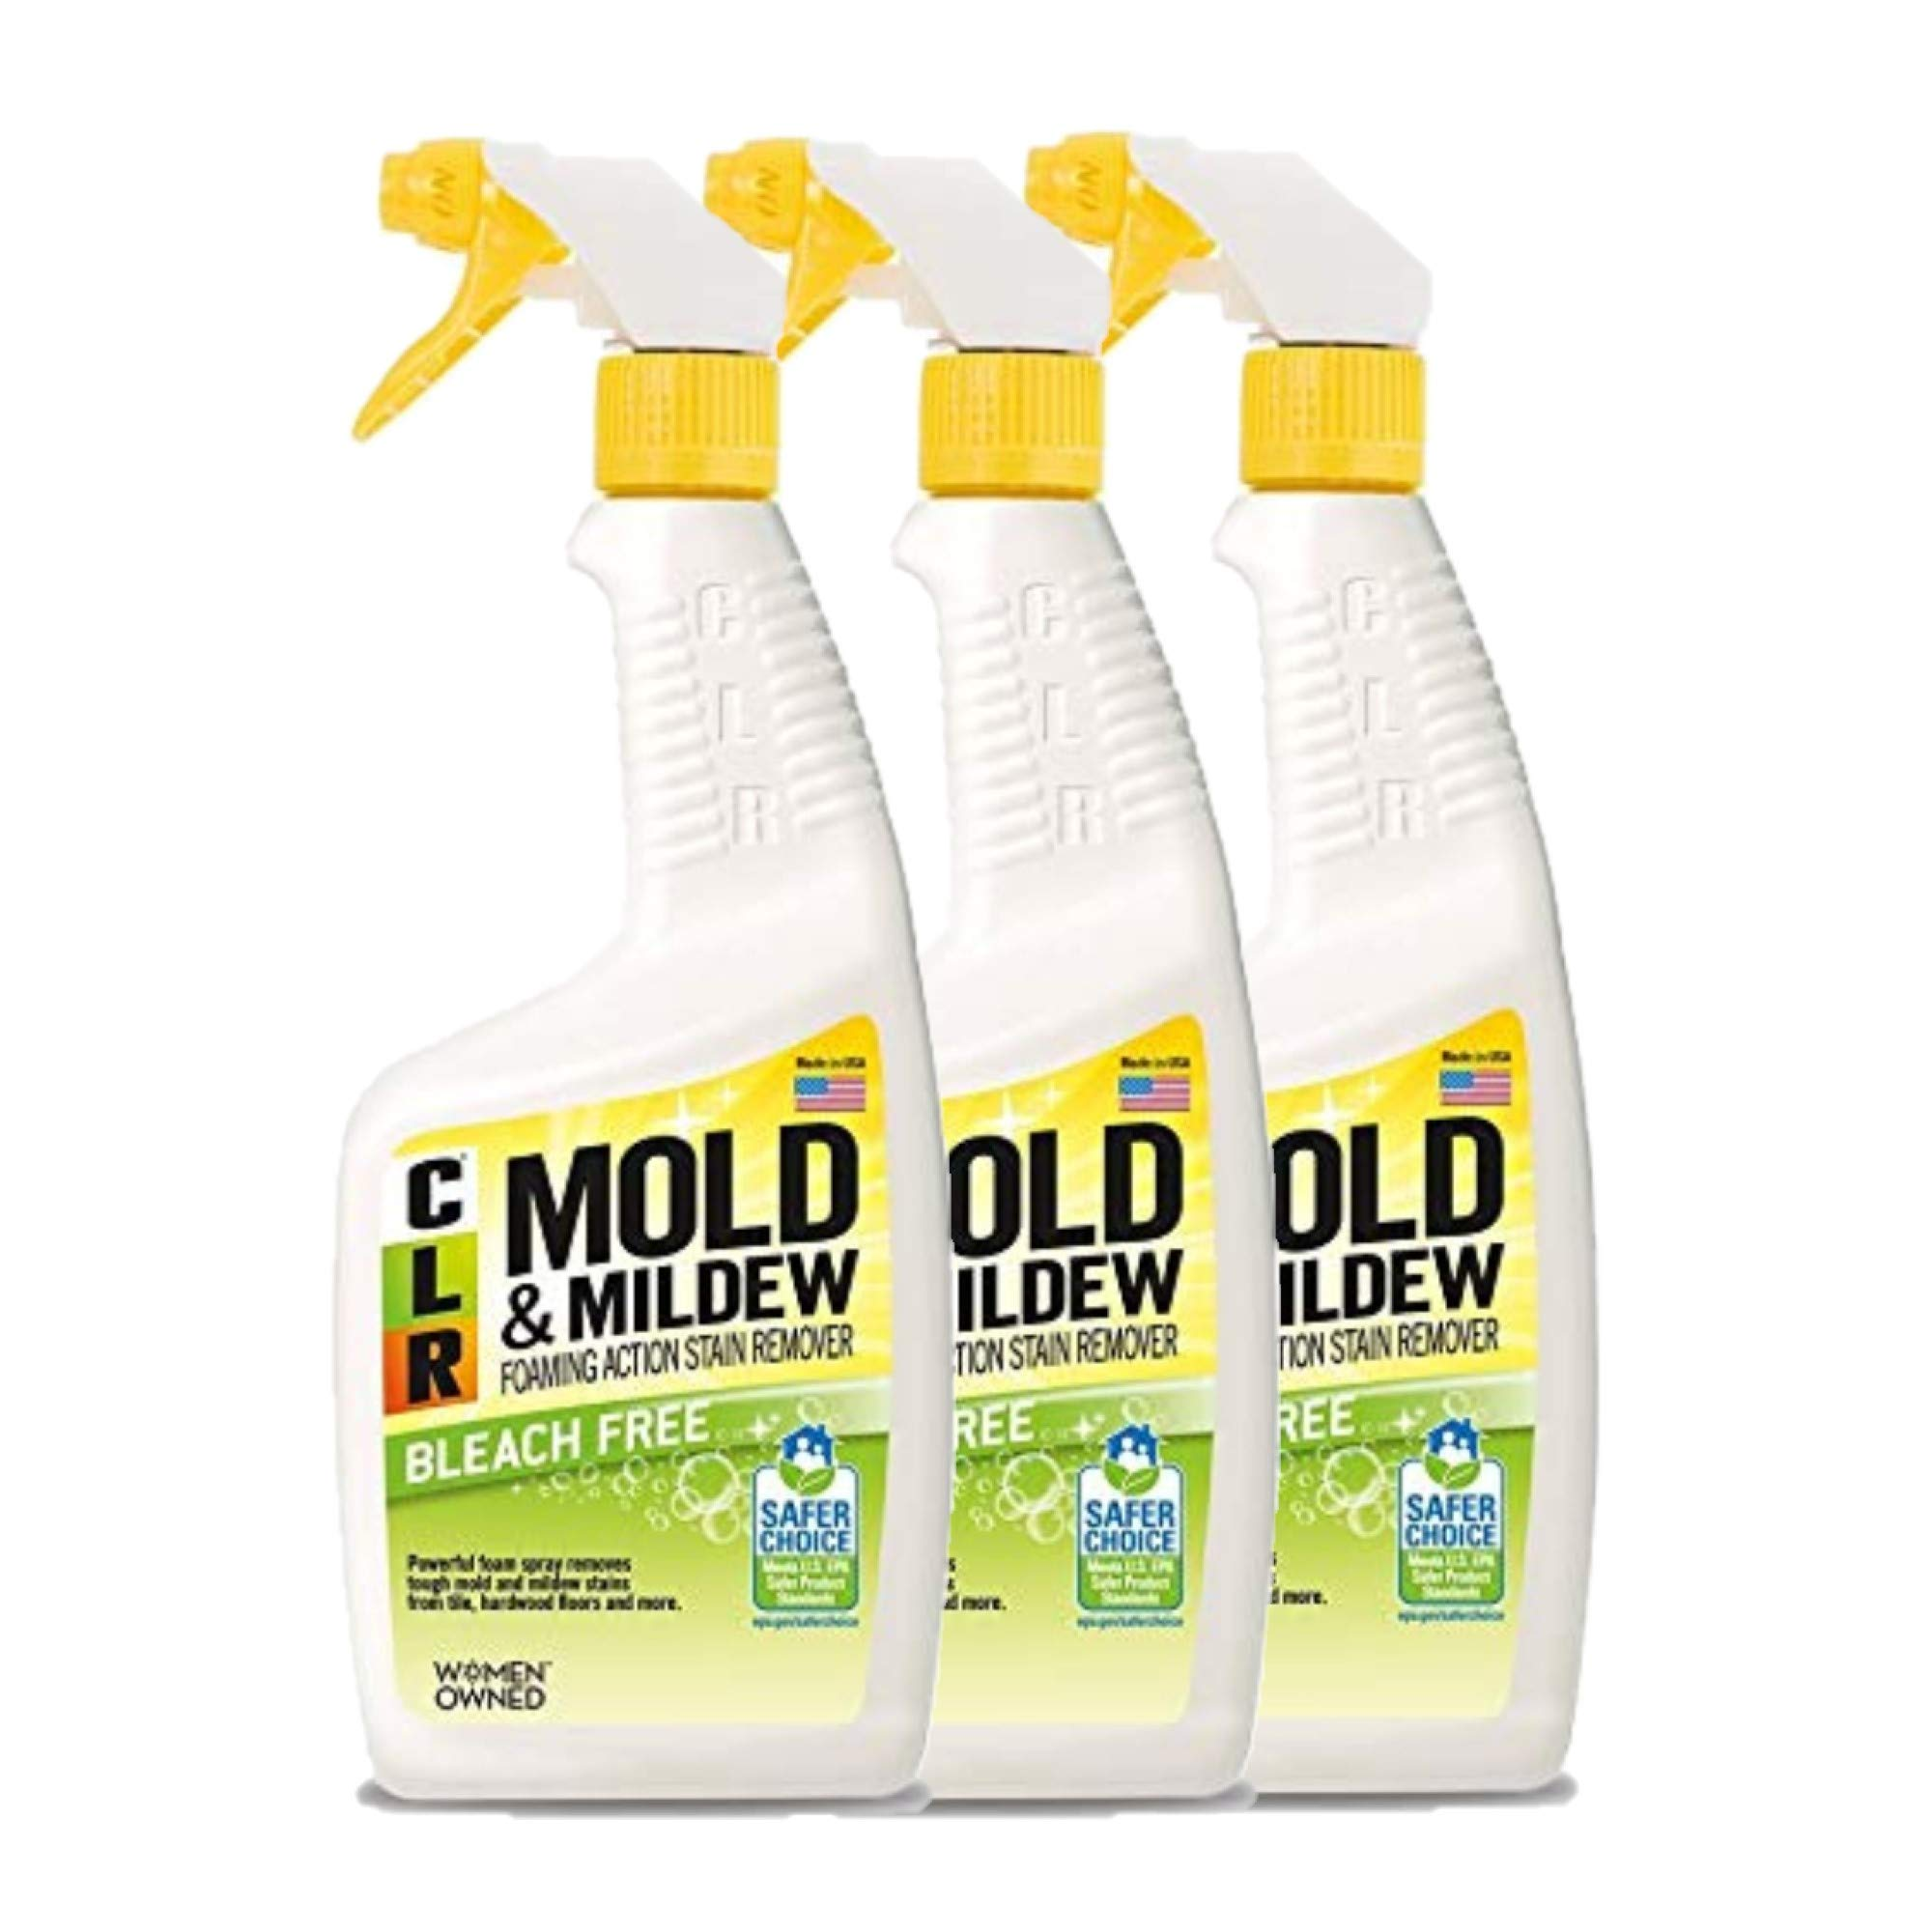 CLR PB-CMM-6 Mold and Mildew Stain Remover, 32 oz. Spray Bottle (3)